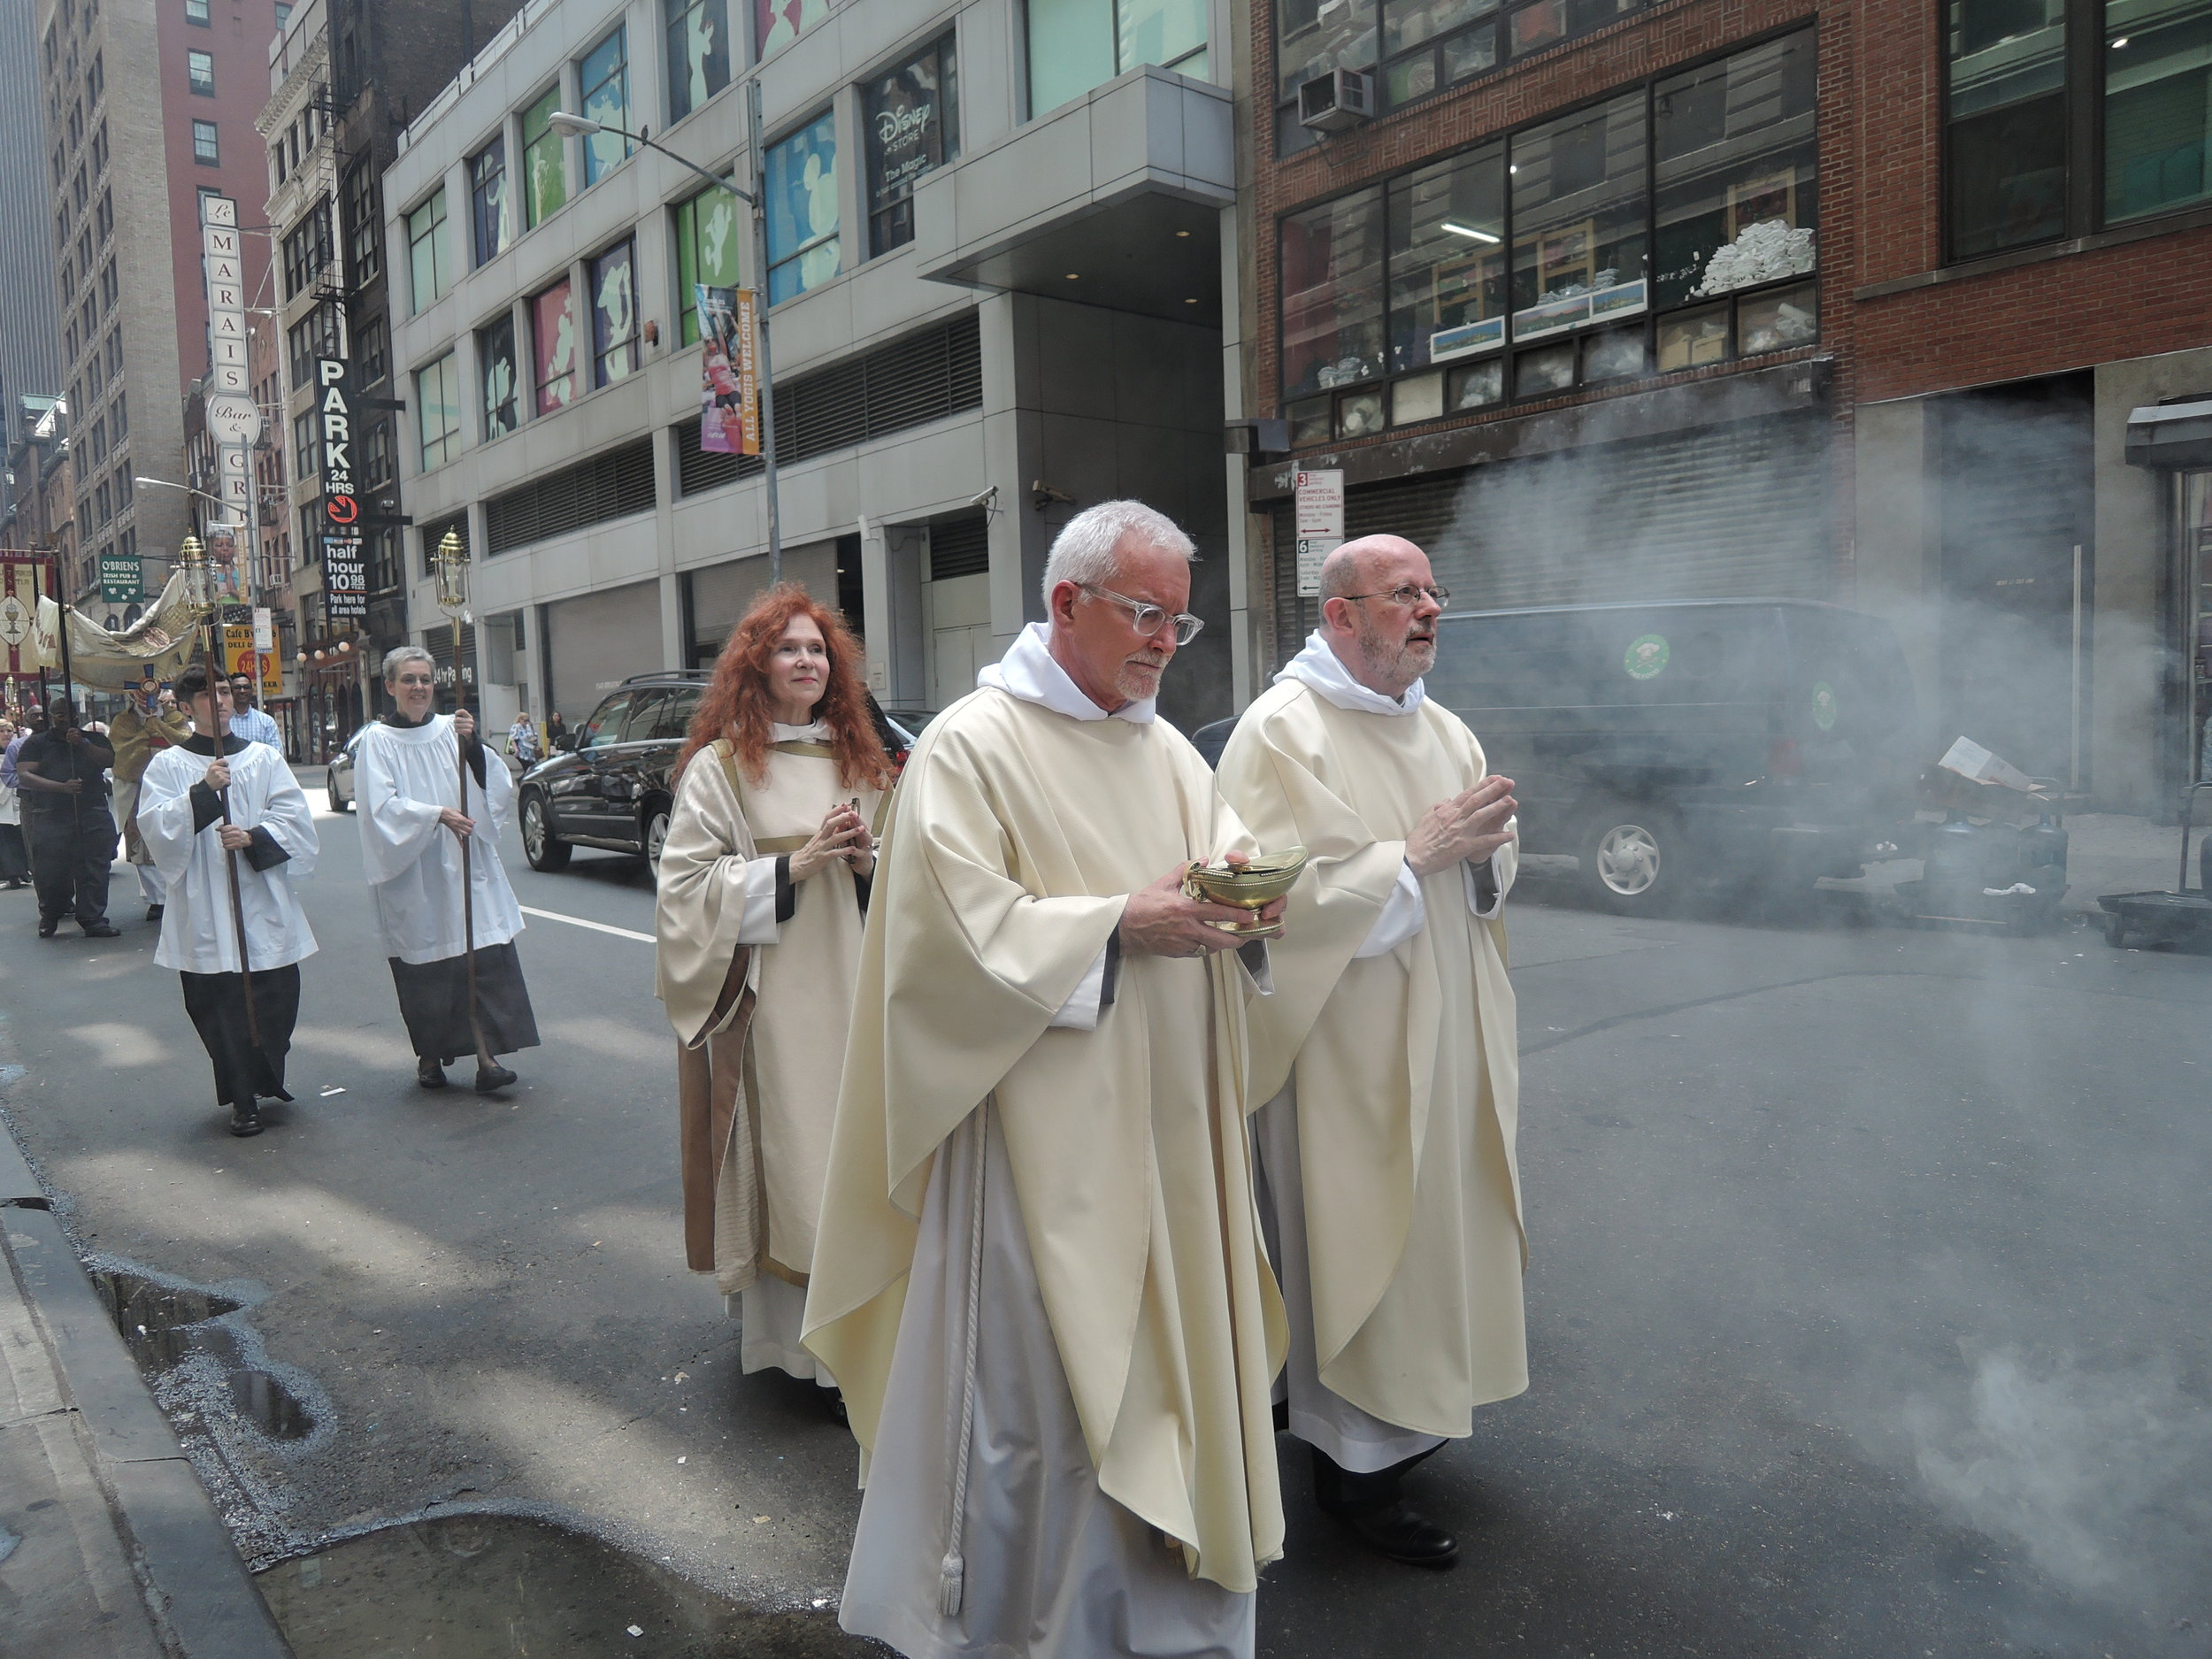 Assisting clergy in procession, following the thurifers